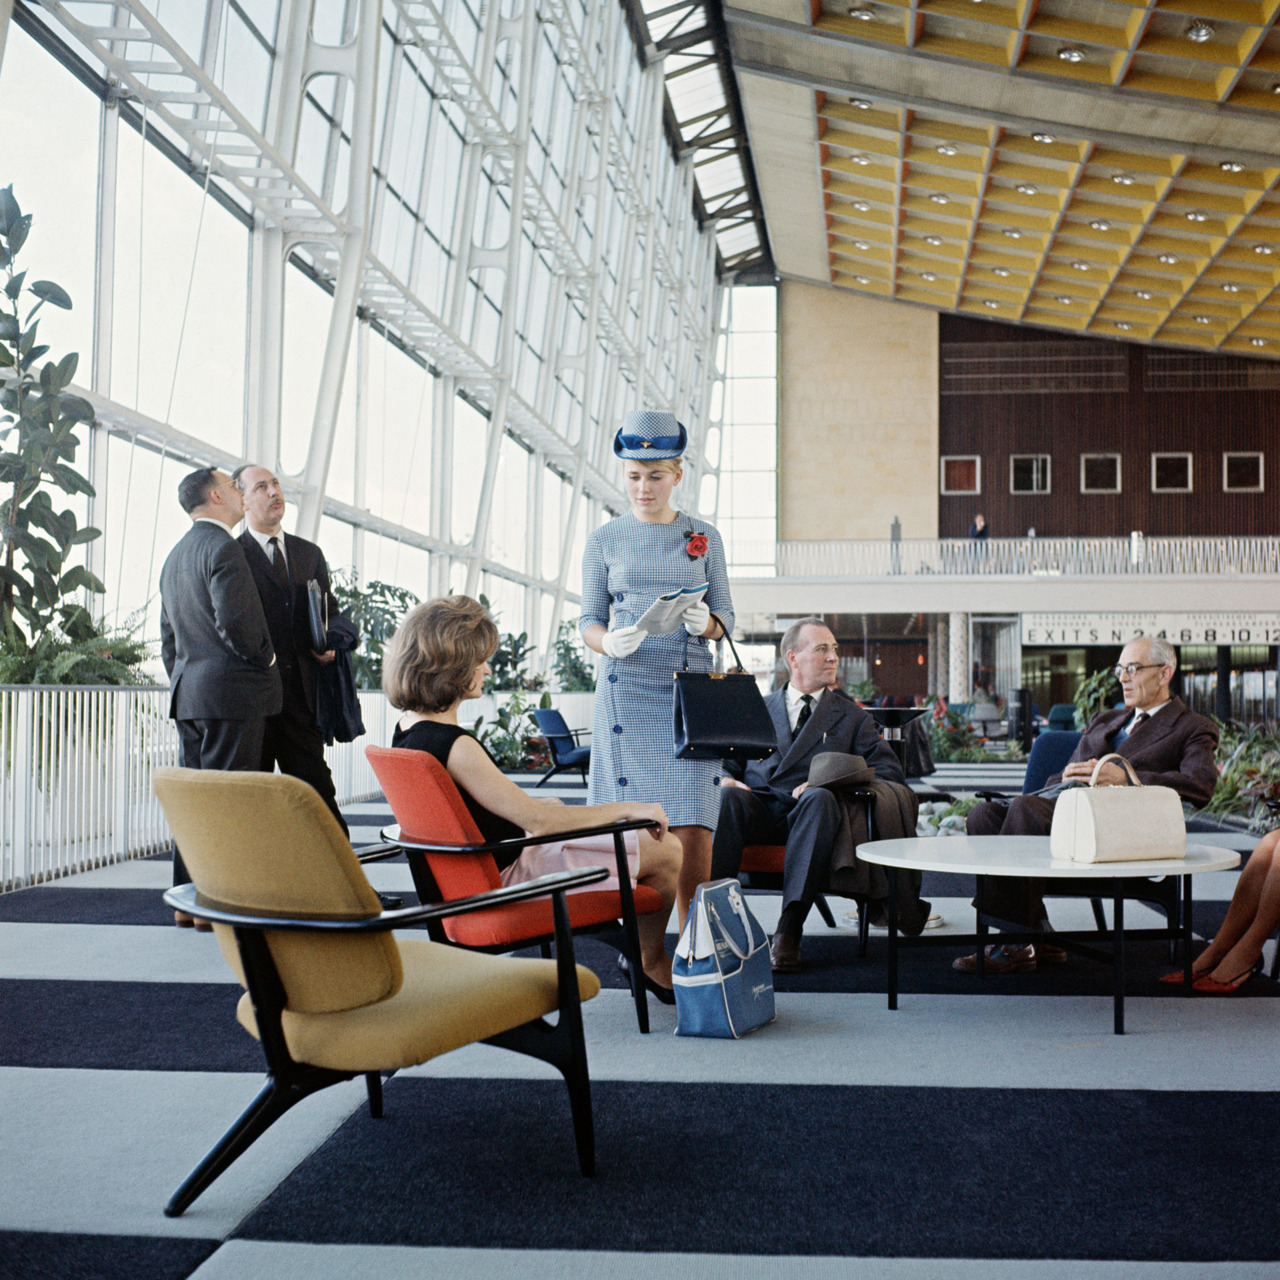 Sabena Airlines First Class Lounge with Alfred Hendrickx S3 Chairs, Brussels, 1958 via   Mid-Centuria